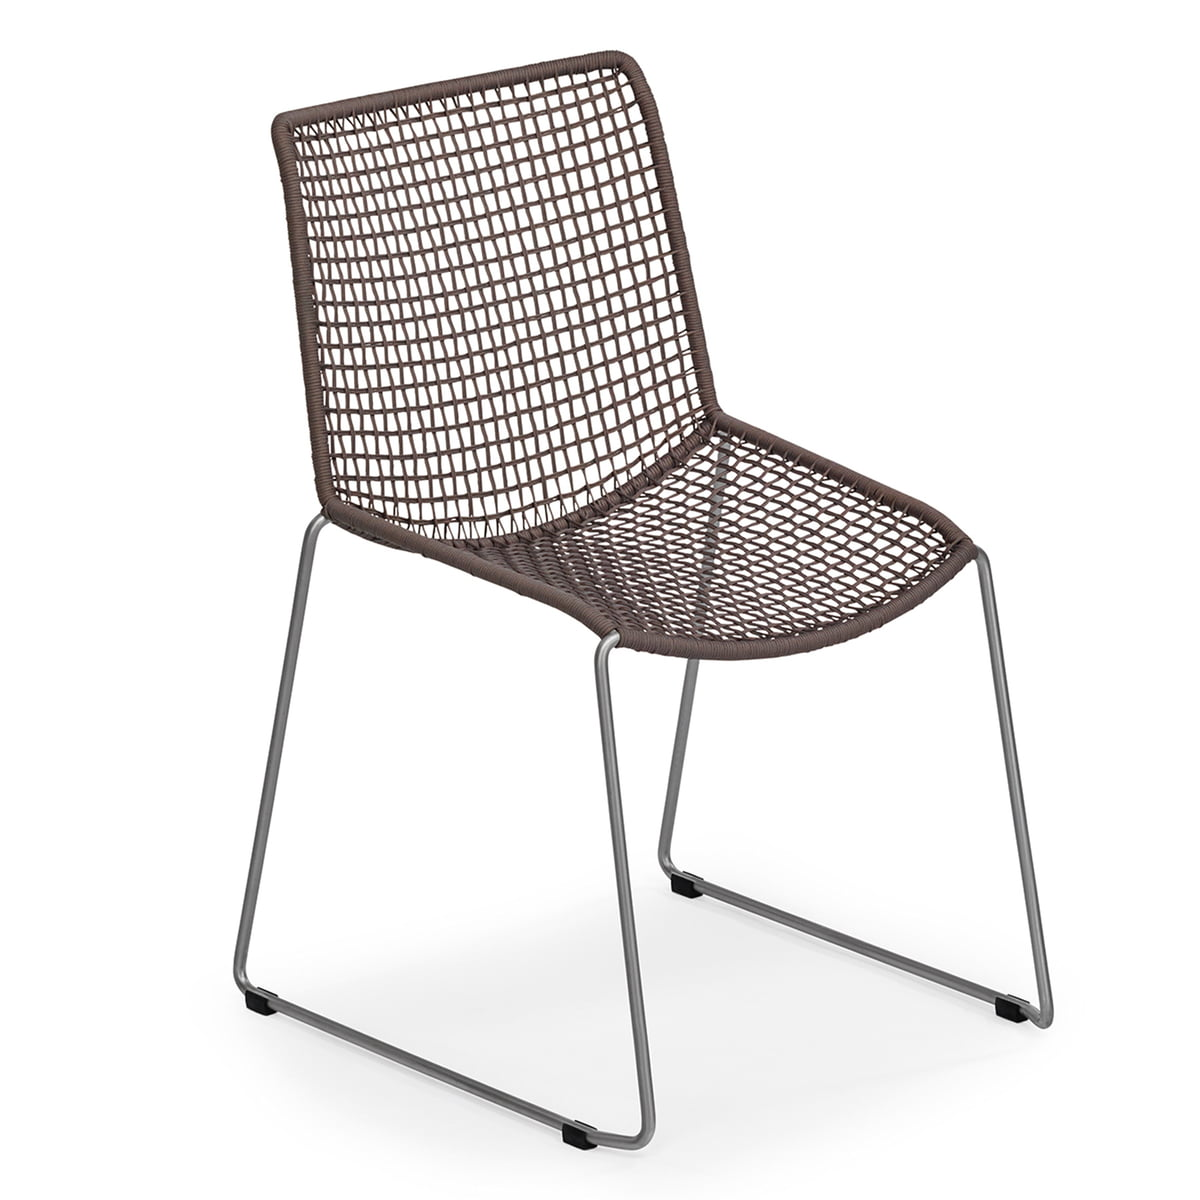 Attrayant Slope Chair By Weishäupl In Taupe